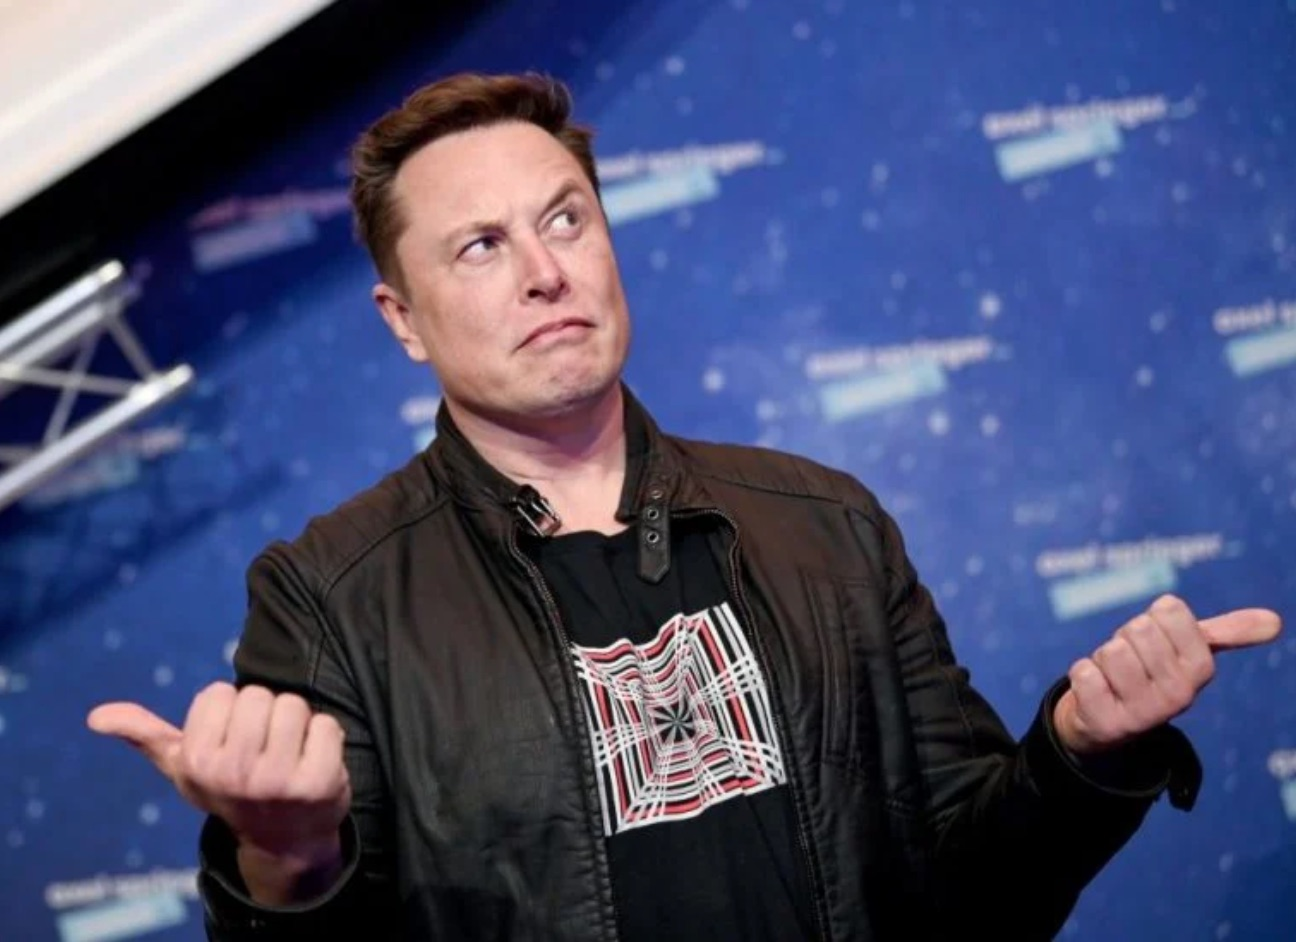 Elon Musk Changes Twitter Avatar to Picture of Fork in the Road, And Now the Internet Is Having a Panic Attack (Another One)